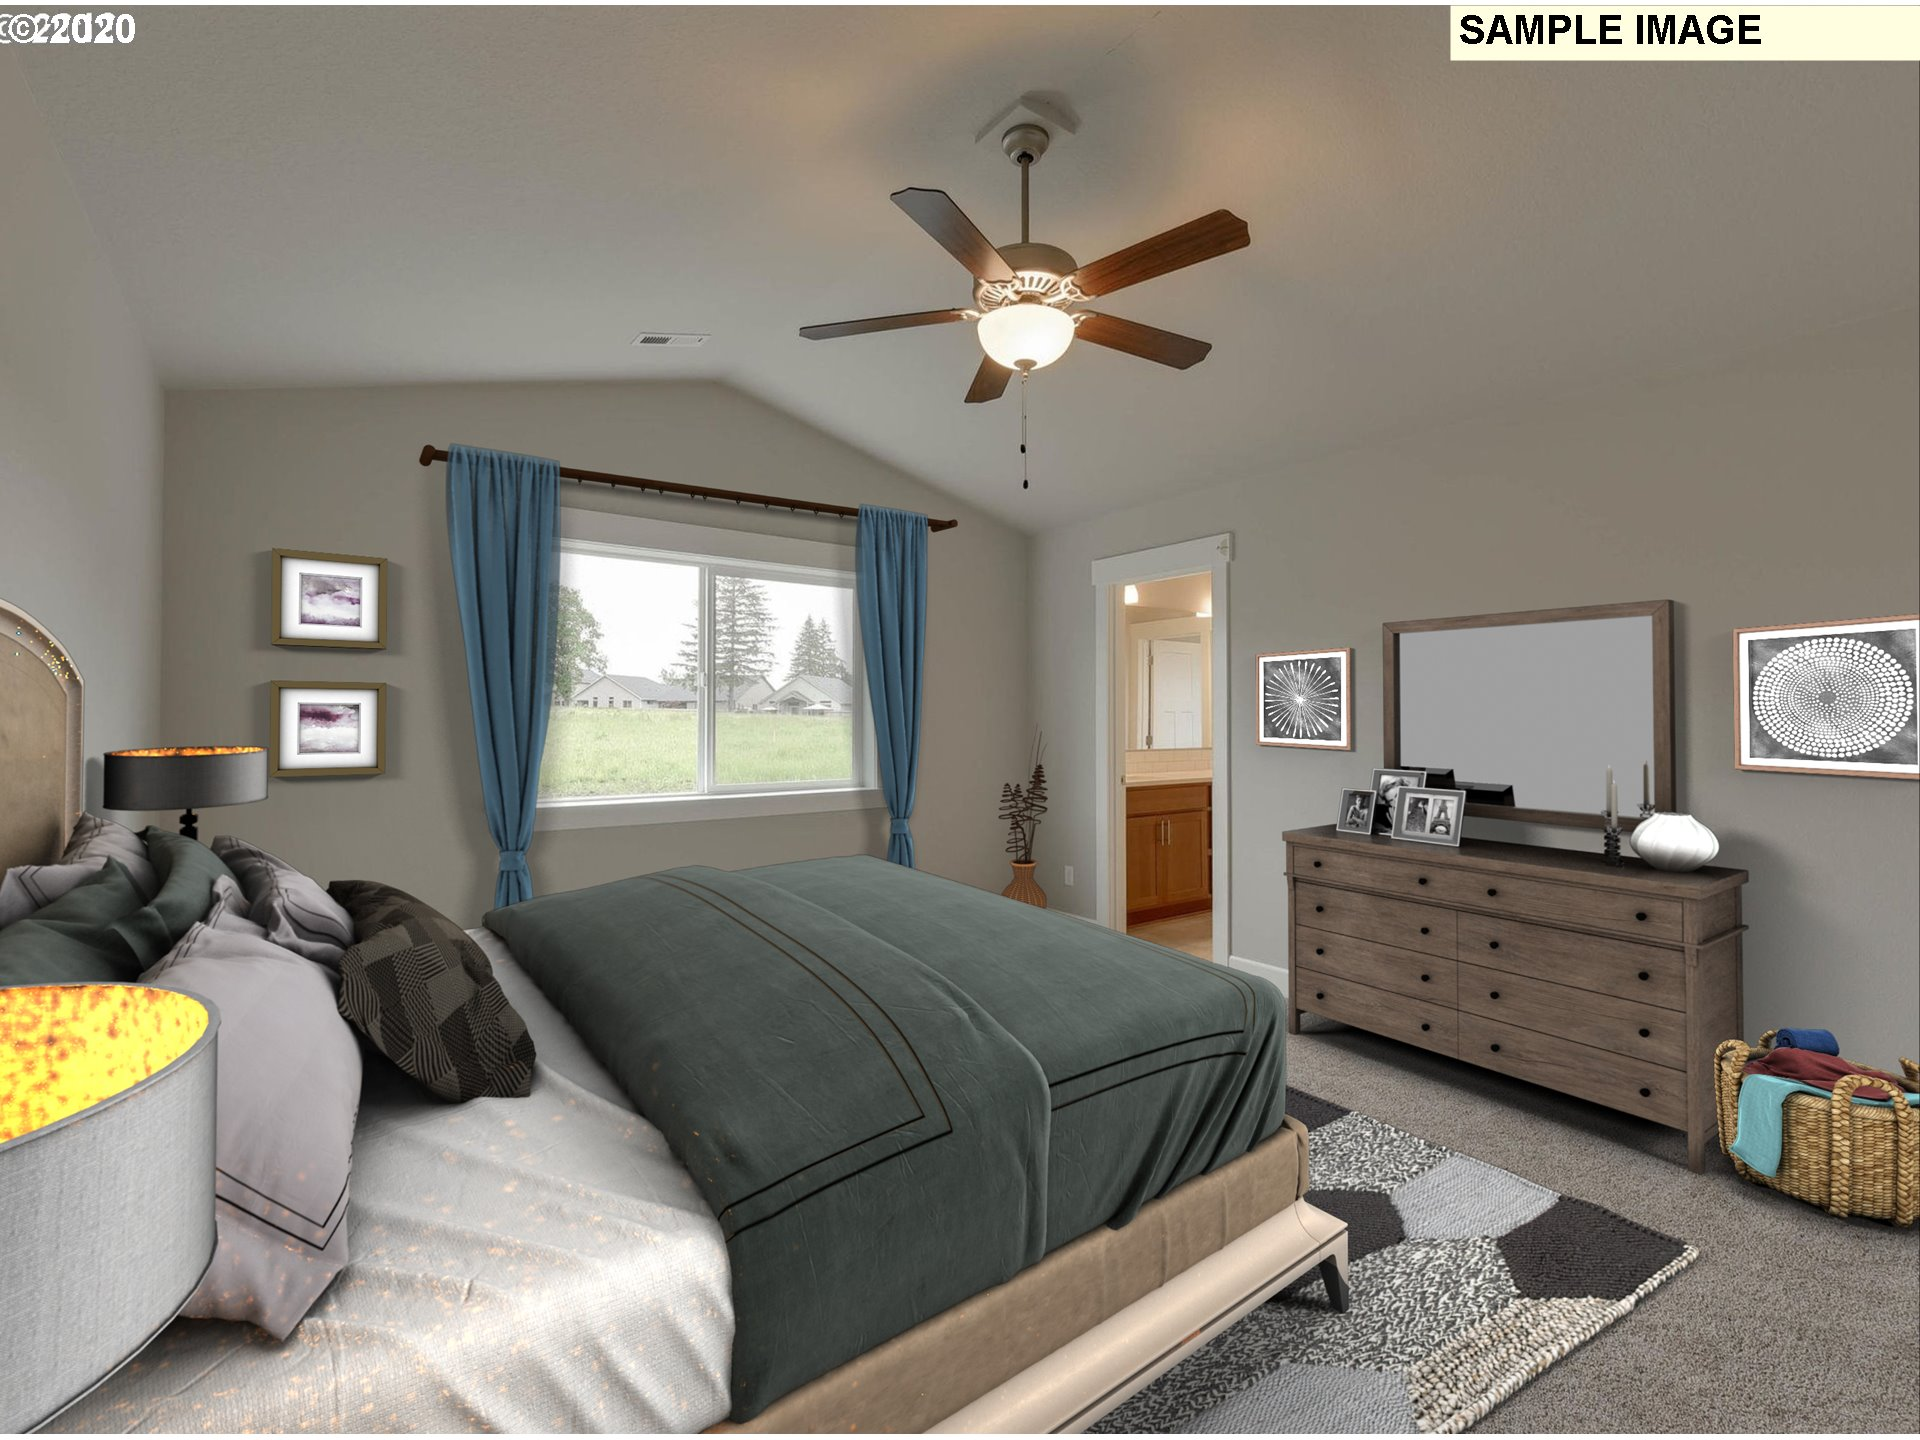 Similar Home - Example